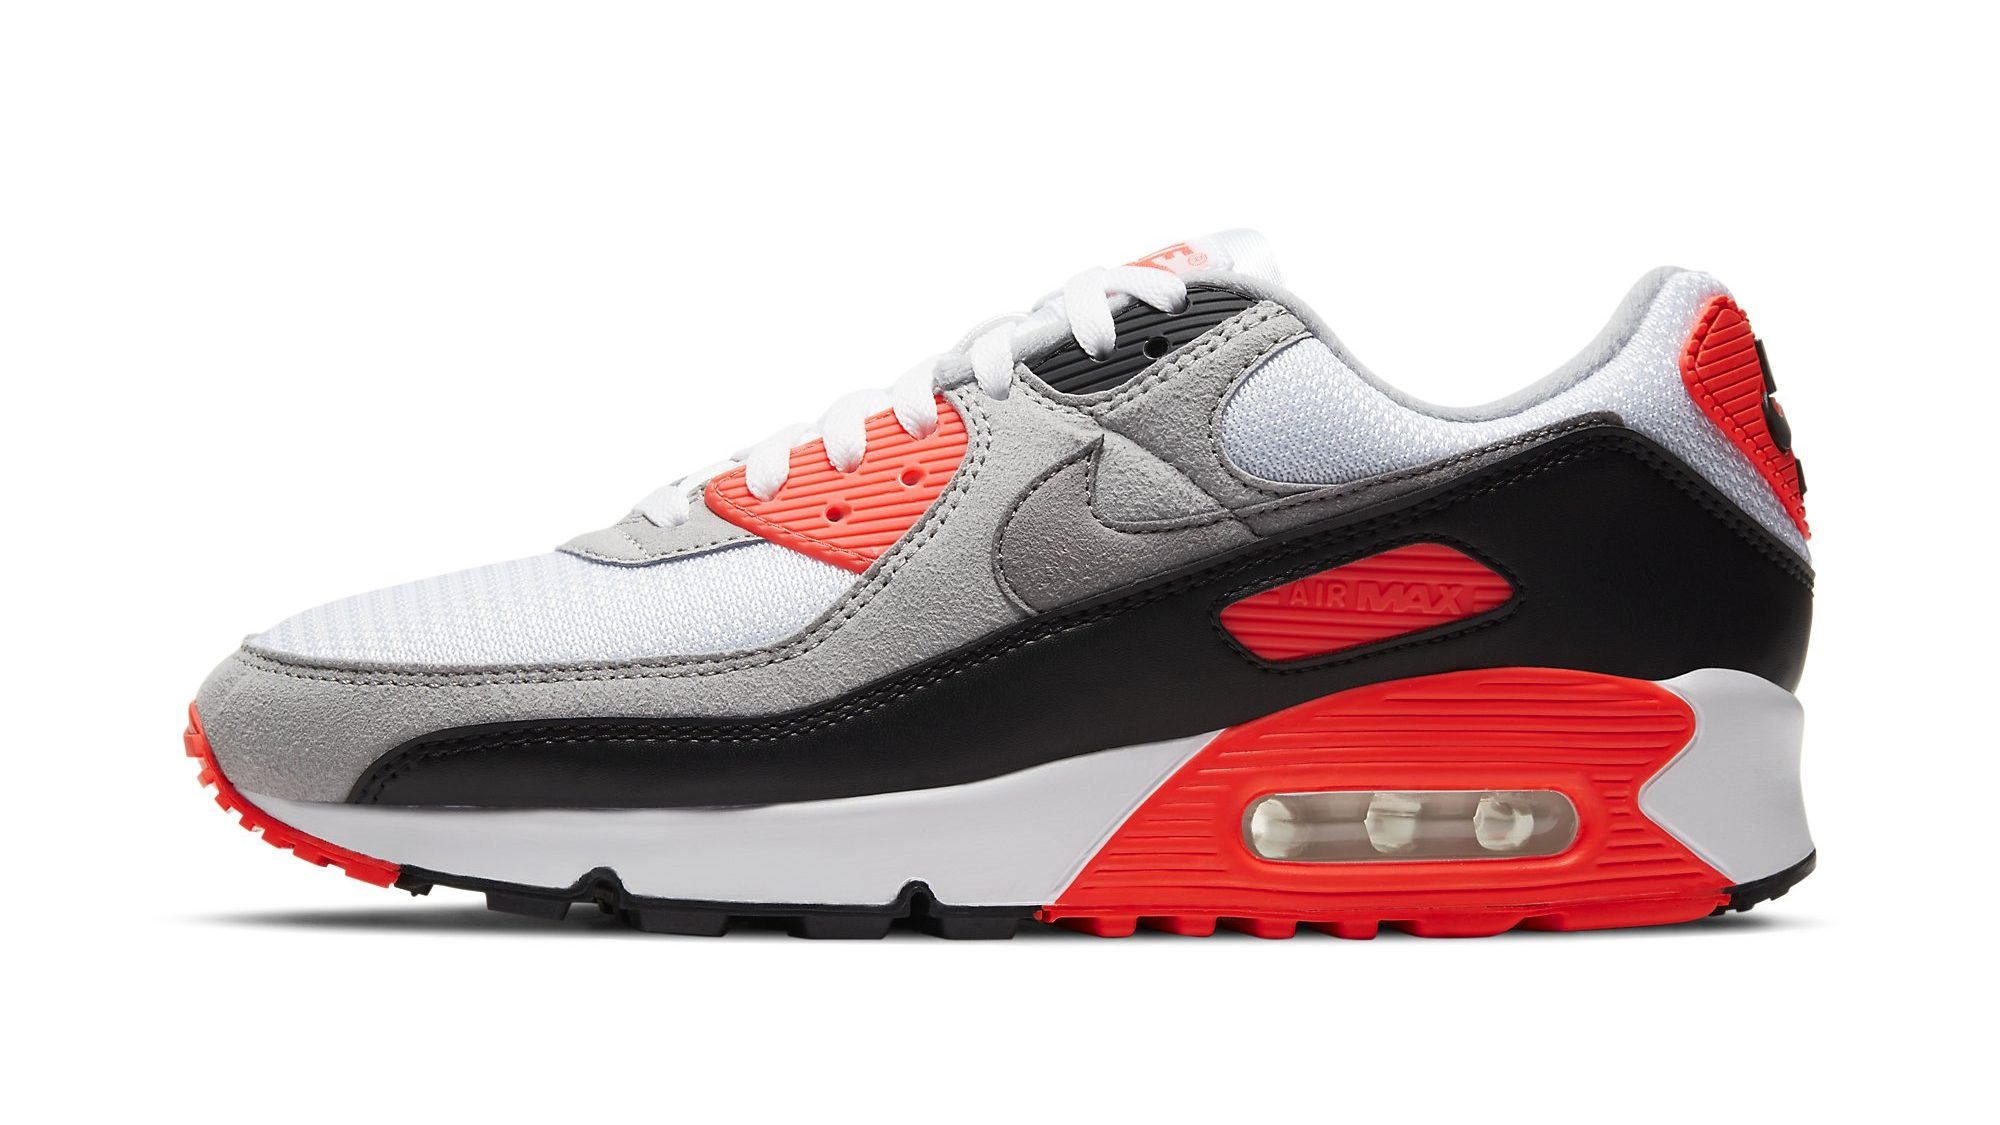 Toro Odia Explicación  Nike Air Max 3 'Radiant Red' Release Info: How to Buy the Shoe – Footwear  News